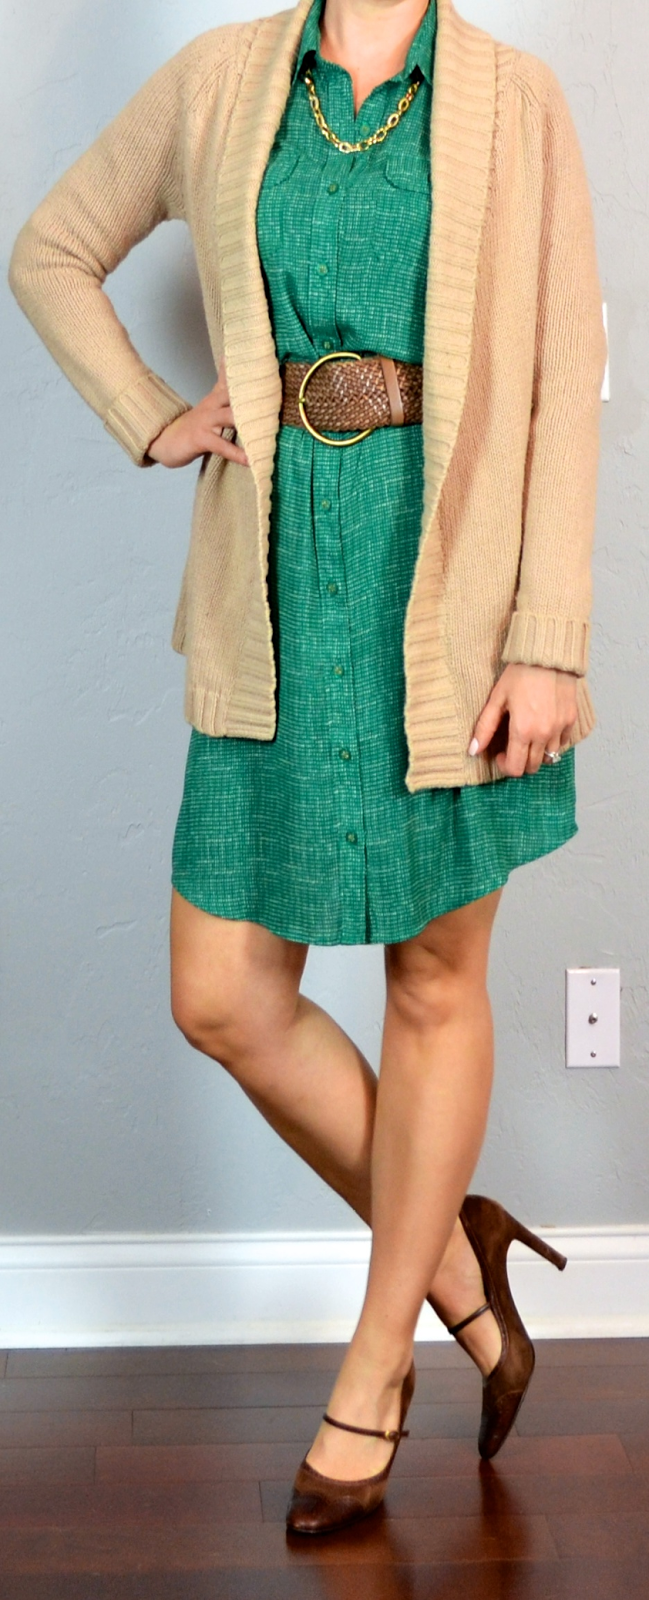 54e8ad54f14 outfit post  green shirt dress